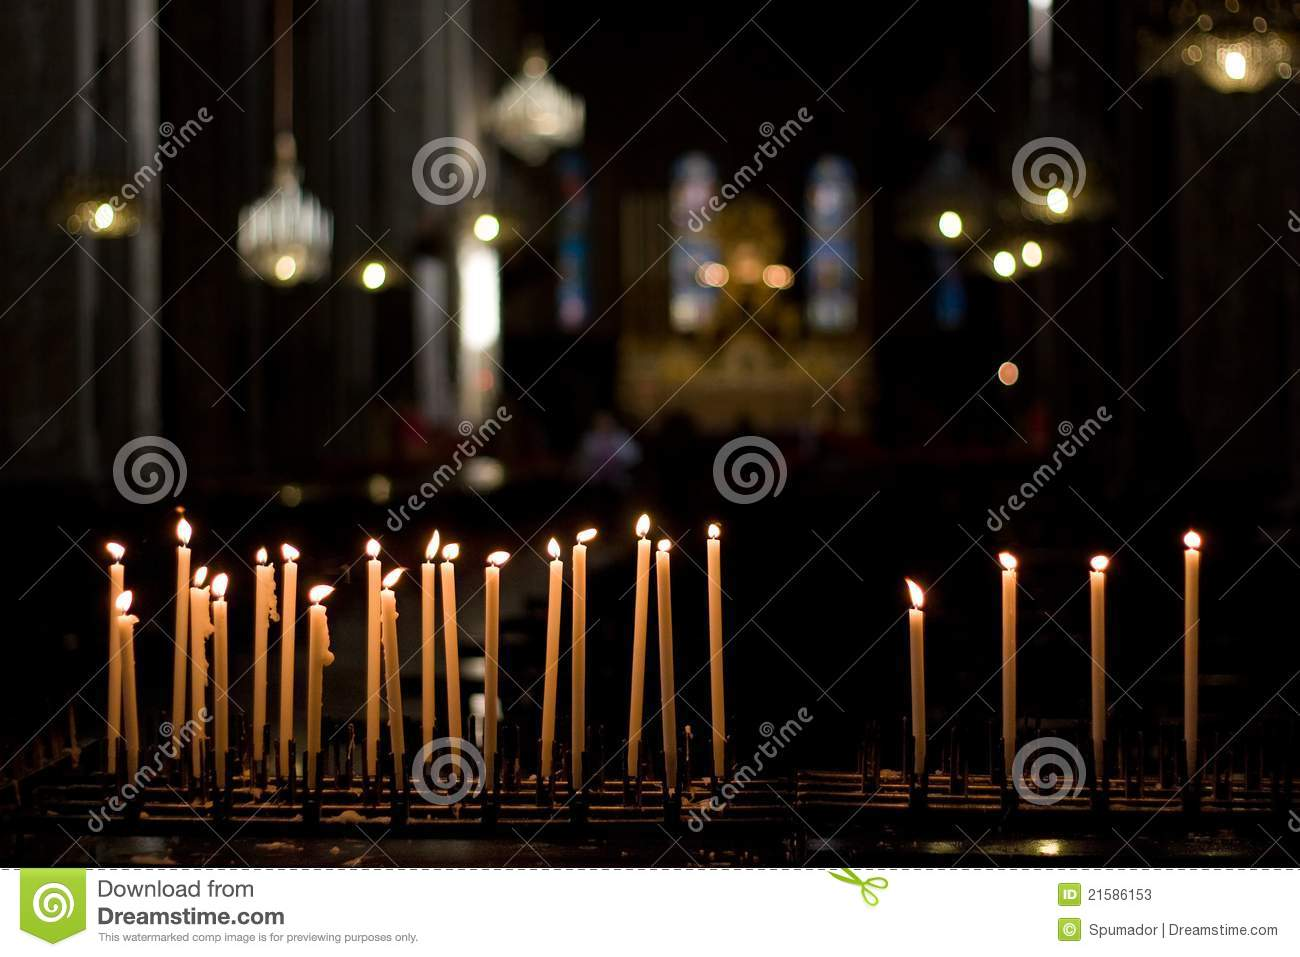 Candles lit in church